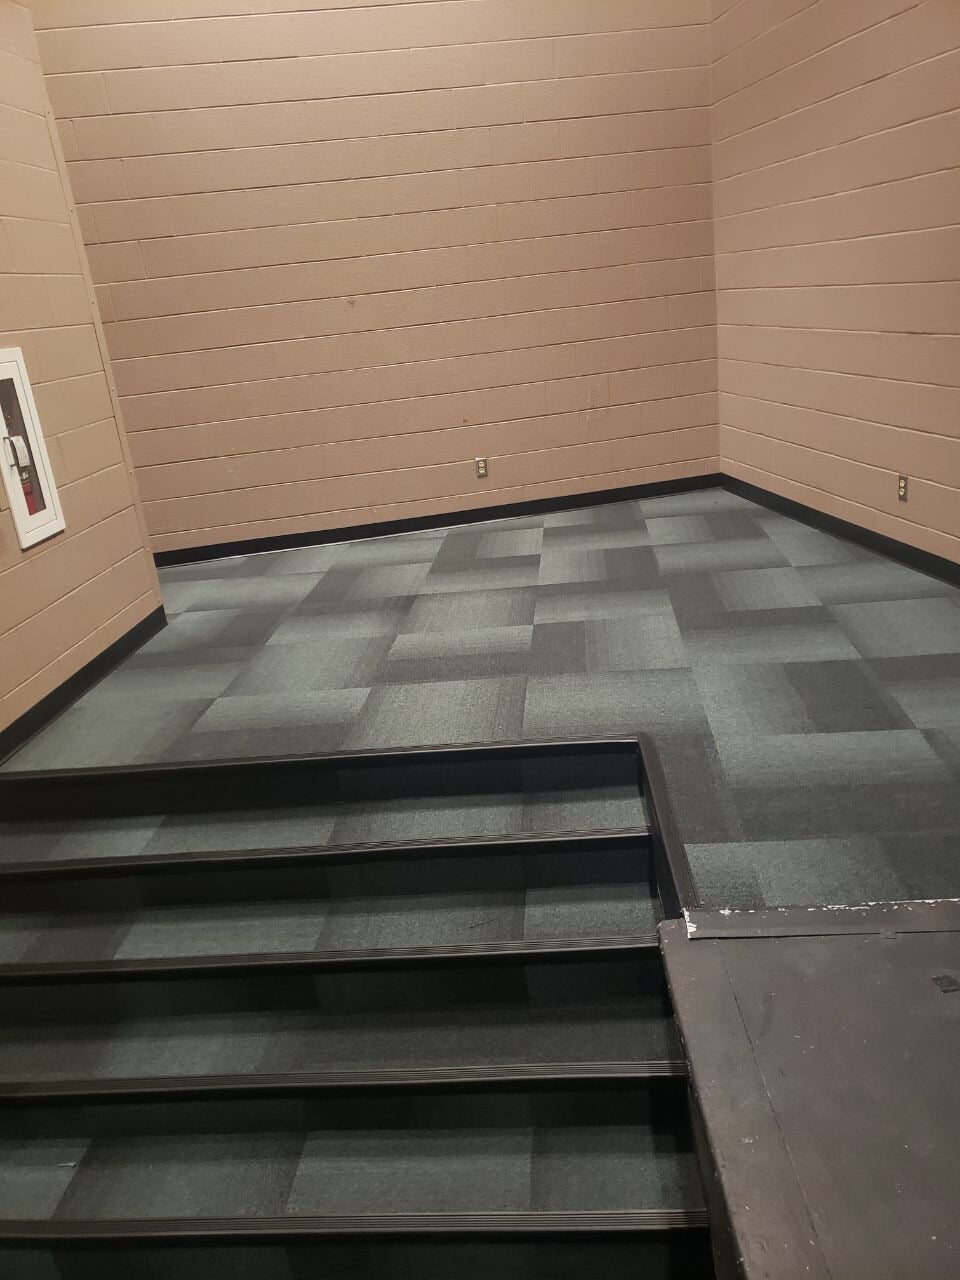 Commercial carpet tiles in Mt. Juliet, TN from Absolute Flooring Inc